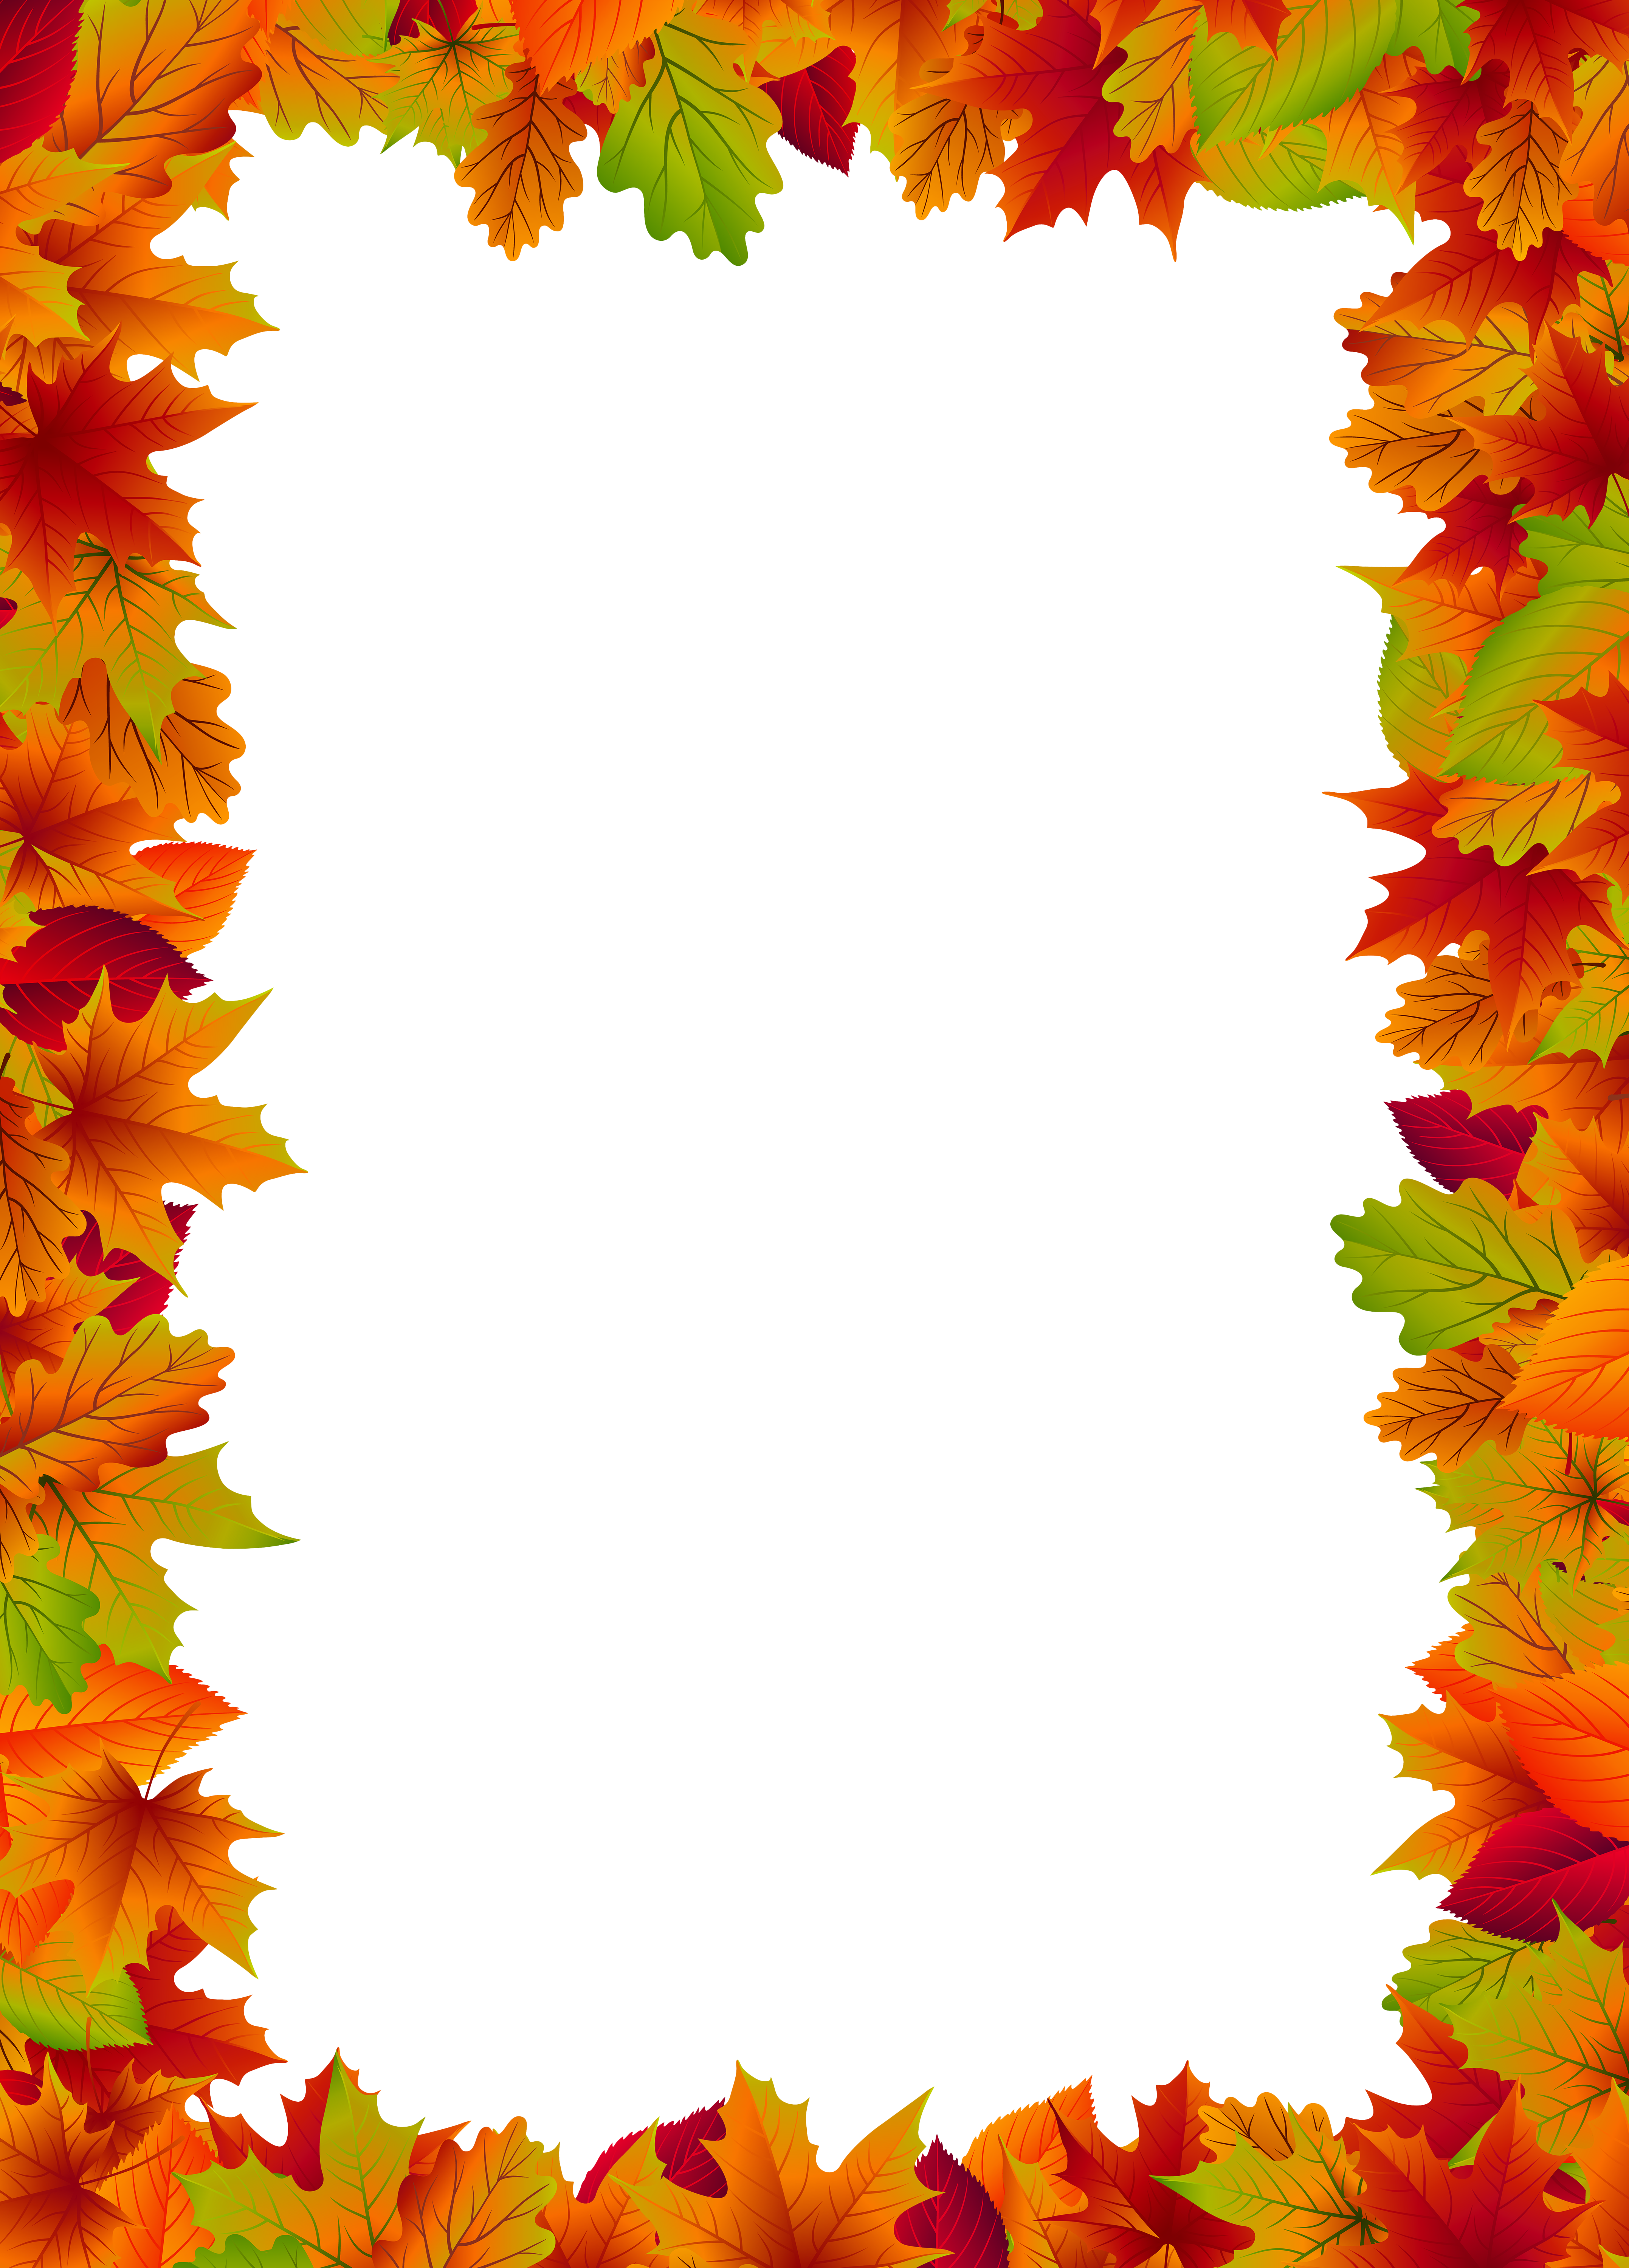 Fall Border Frame Png Clip Art Image Gallery Yopriceville High Quality Images And Transparent Png Free Fall Borders Clip Art Frames Borders Fall Clip Art